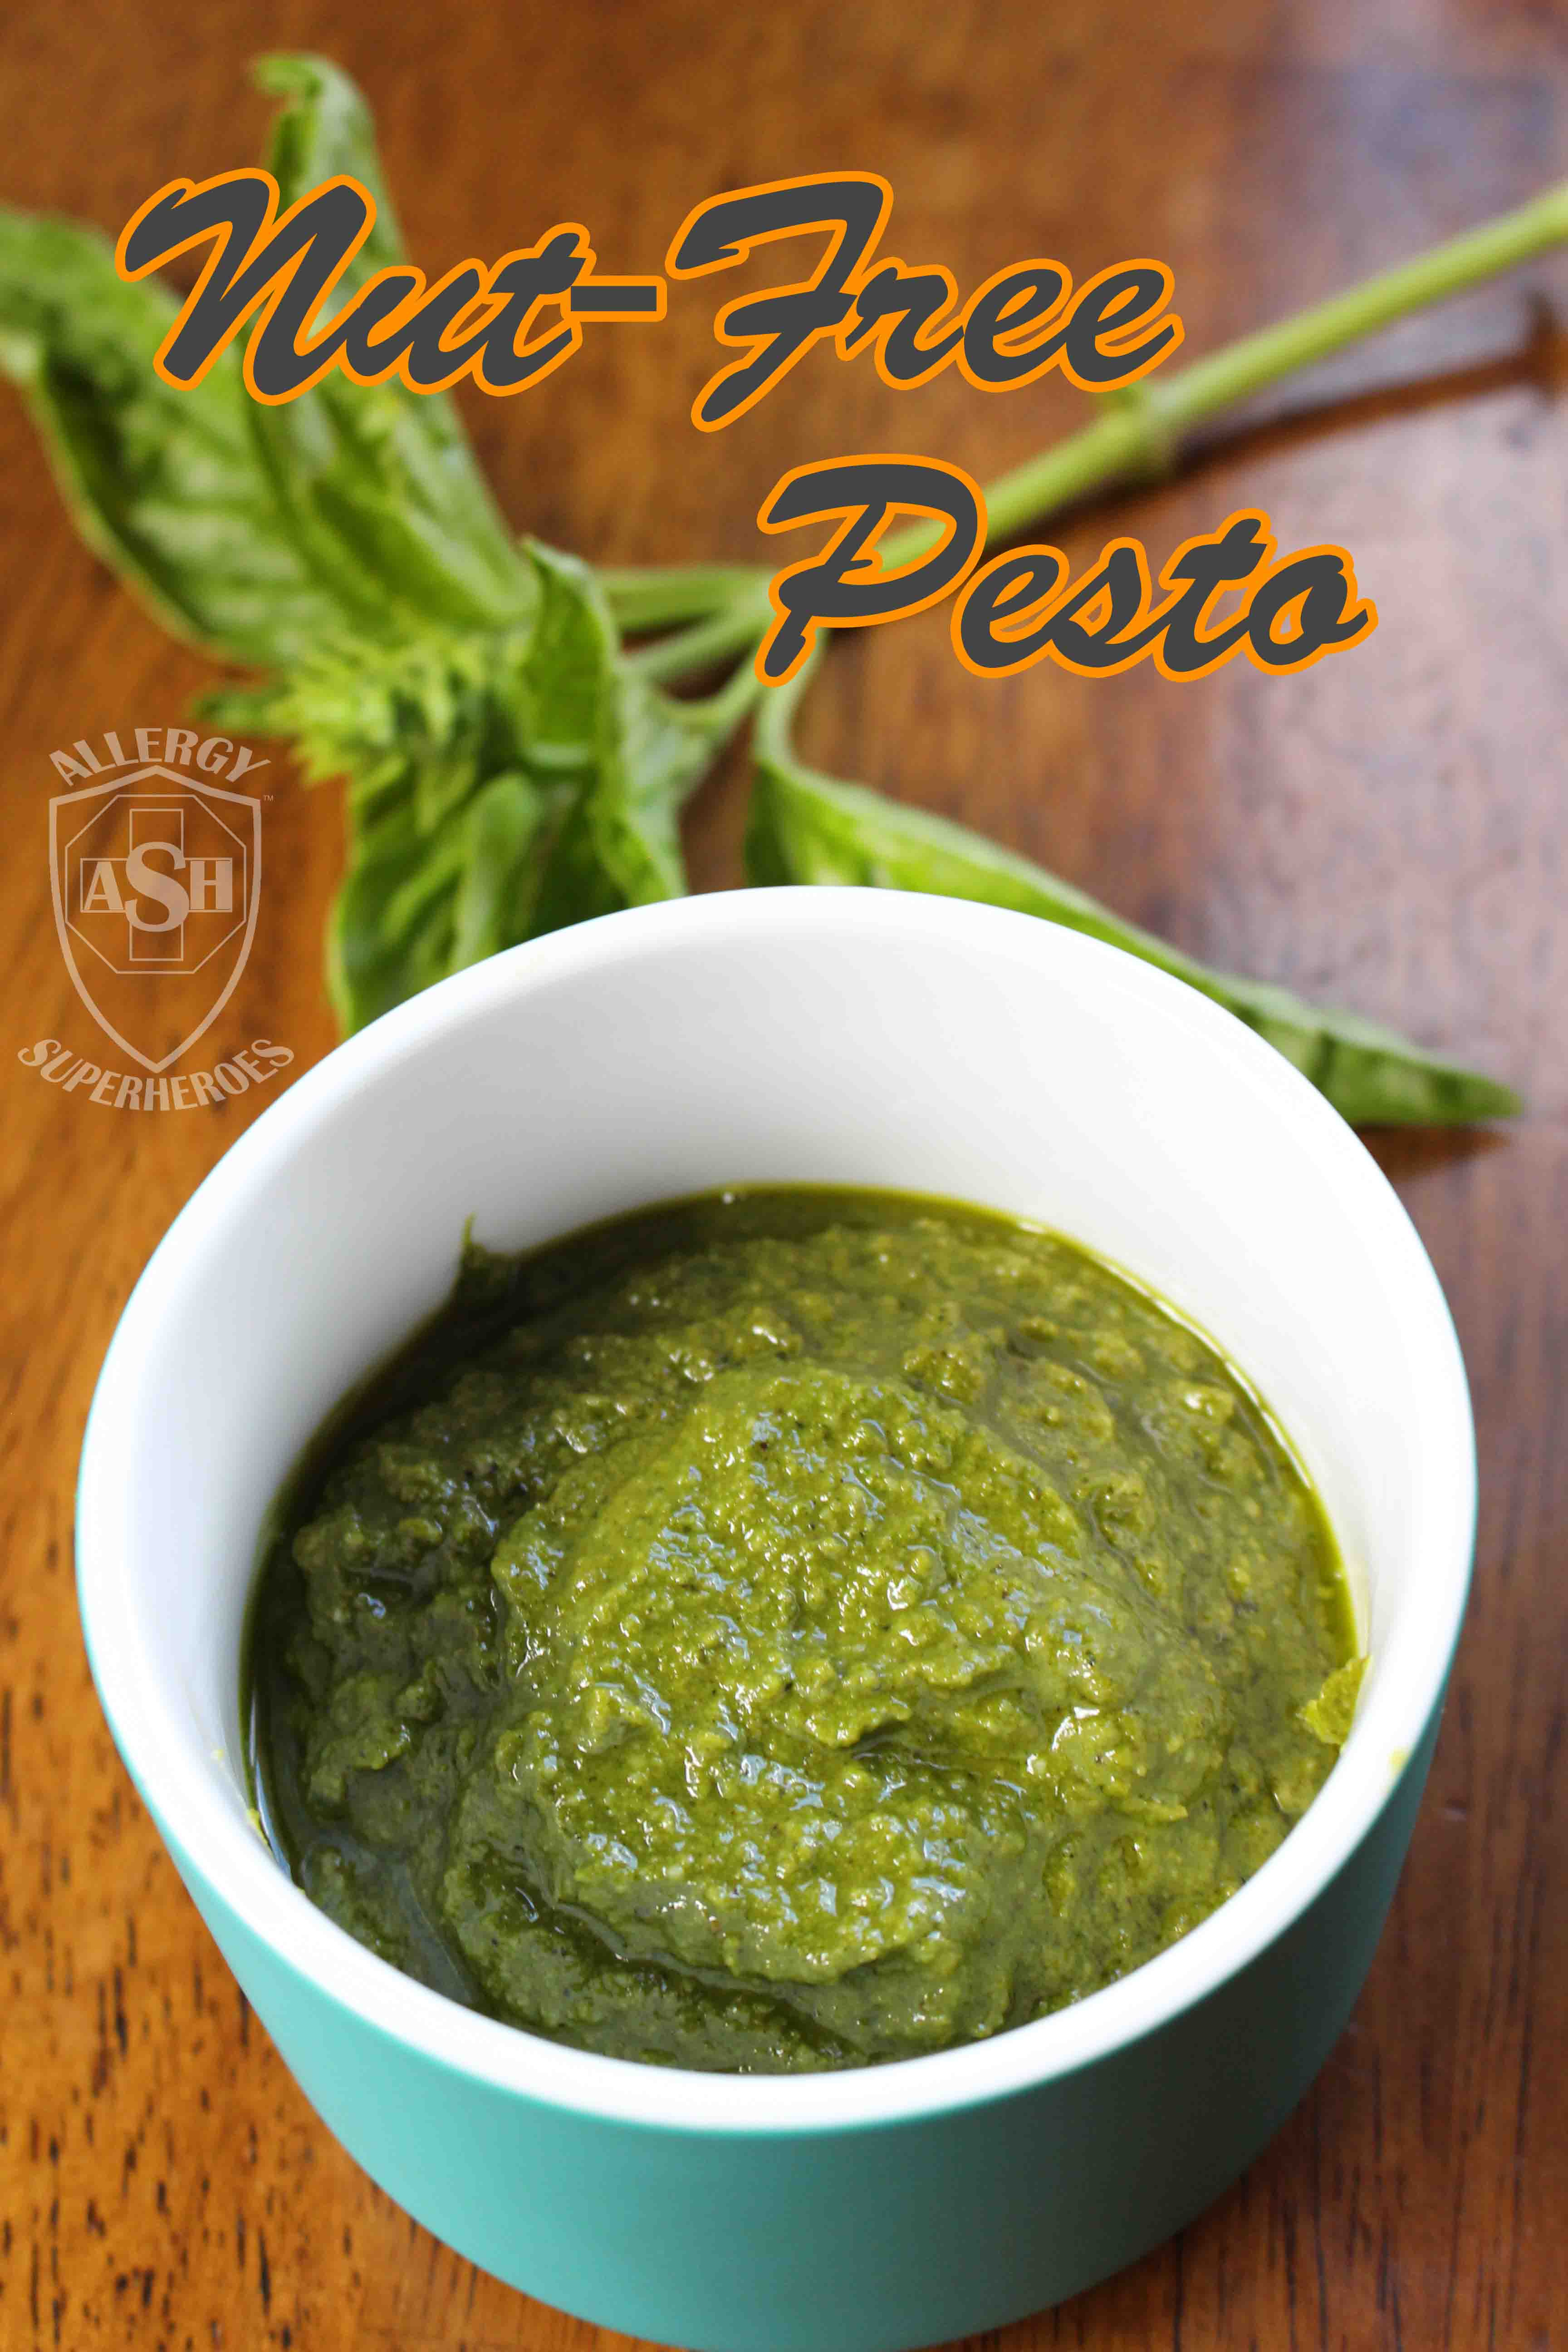 Nut-Free Pesto recipe using Hemp Seeds | from Allergy Superheroes